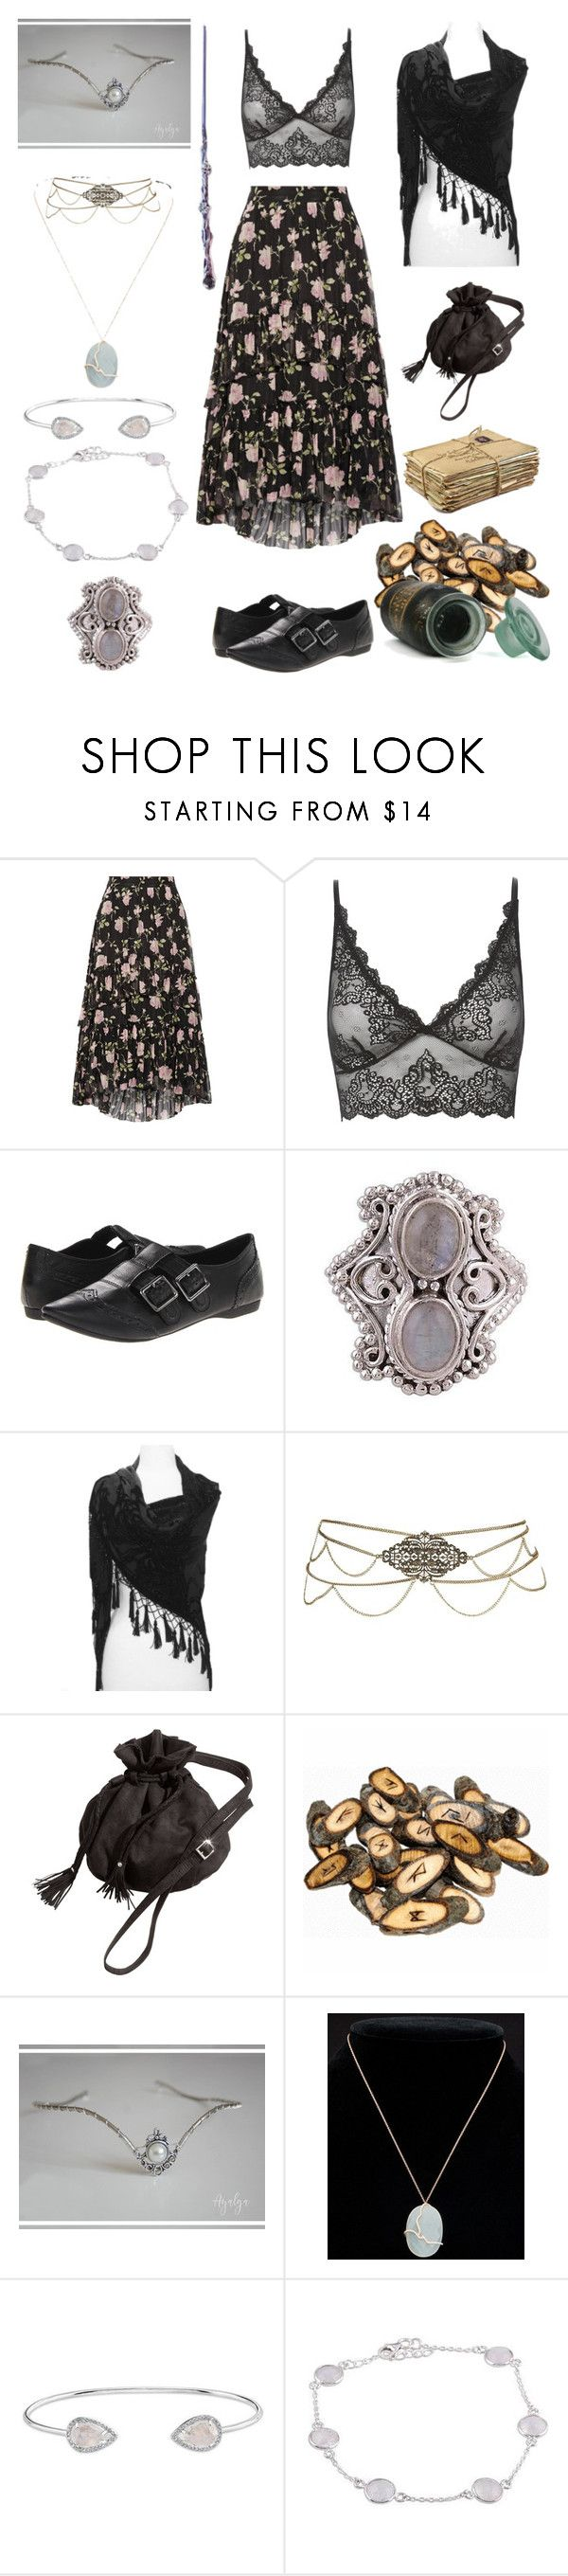 """""""Teen Witch"""" by mellamanellen ❤ liked on Polyvore featuring Ulla Johnson, Only Hearts, Rocket Dog, NOVICA, Rune NYC, Meira T and Anne Sisteron"""